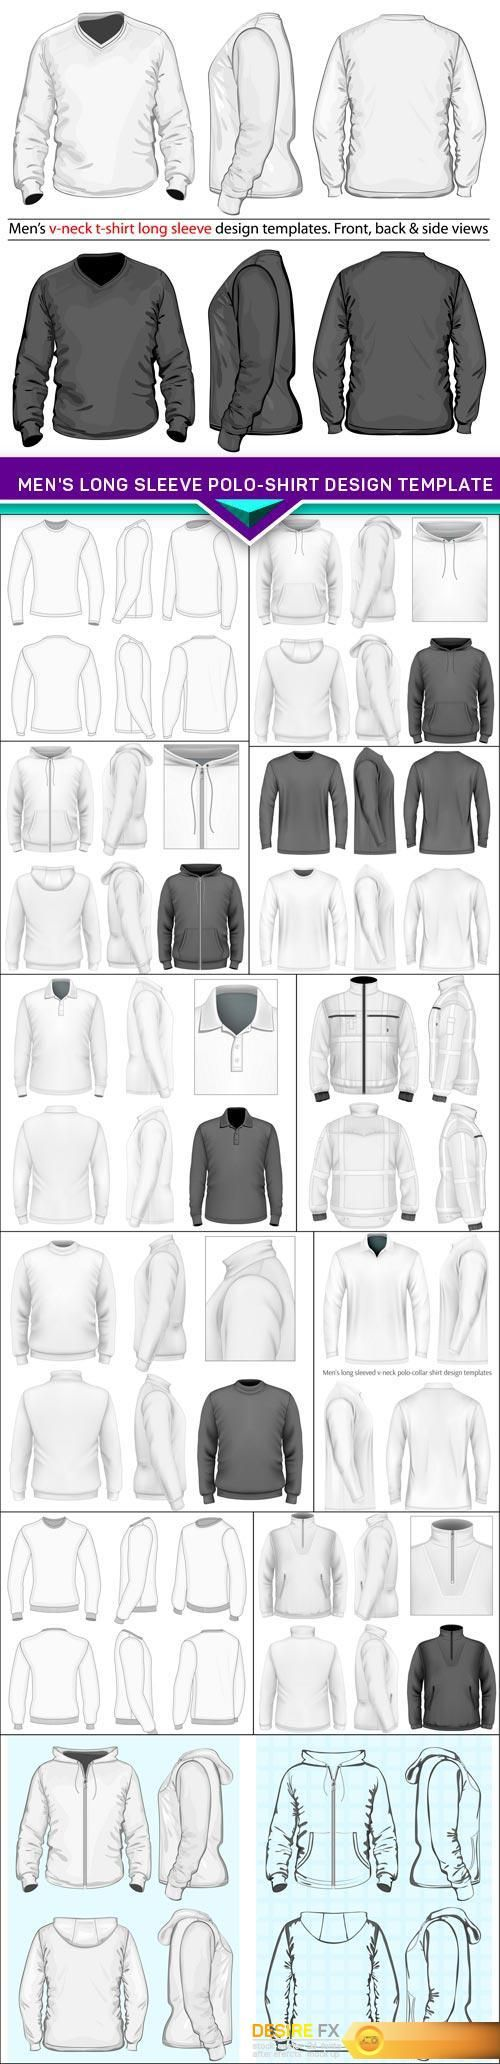 Find your Grapfix Desire With US http://www.desirefx.me/mens-long-sleeve-polo-shirt-design-template-12x-eps/